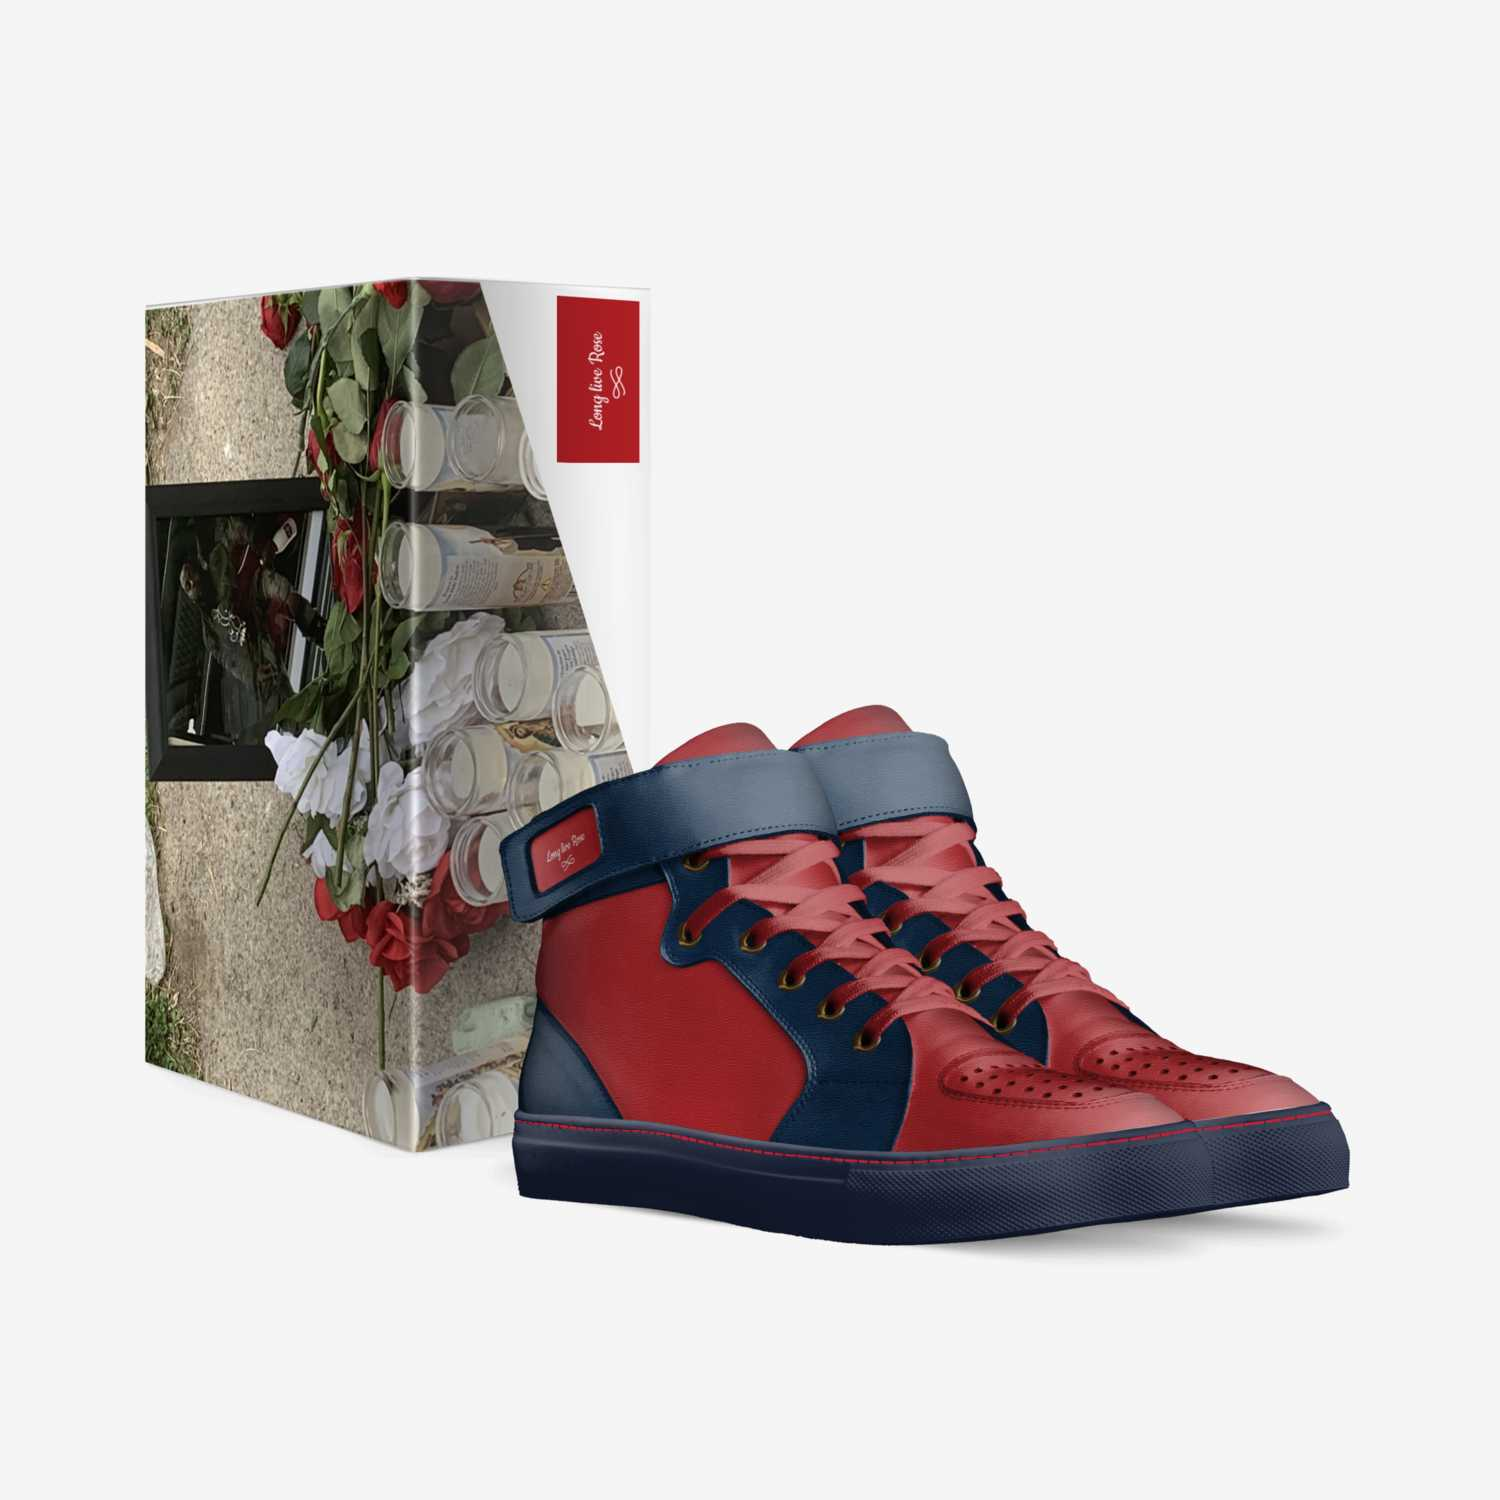 Gottabag custom made in Italy shoes by Stanton Abernathy   Box view